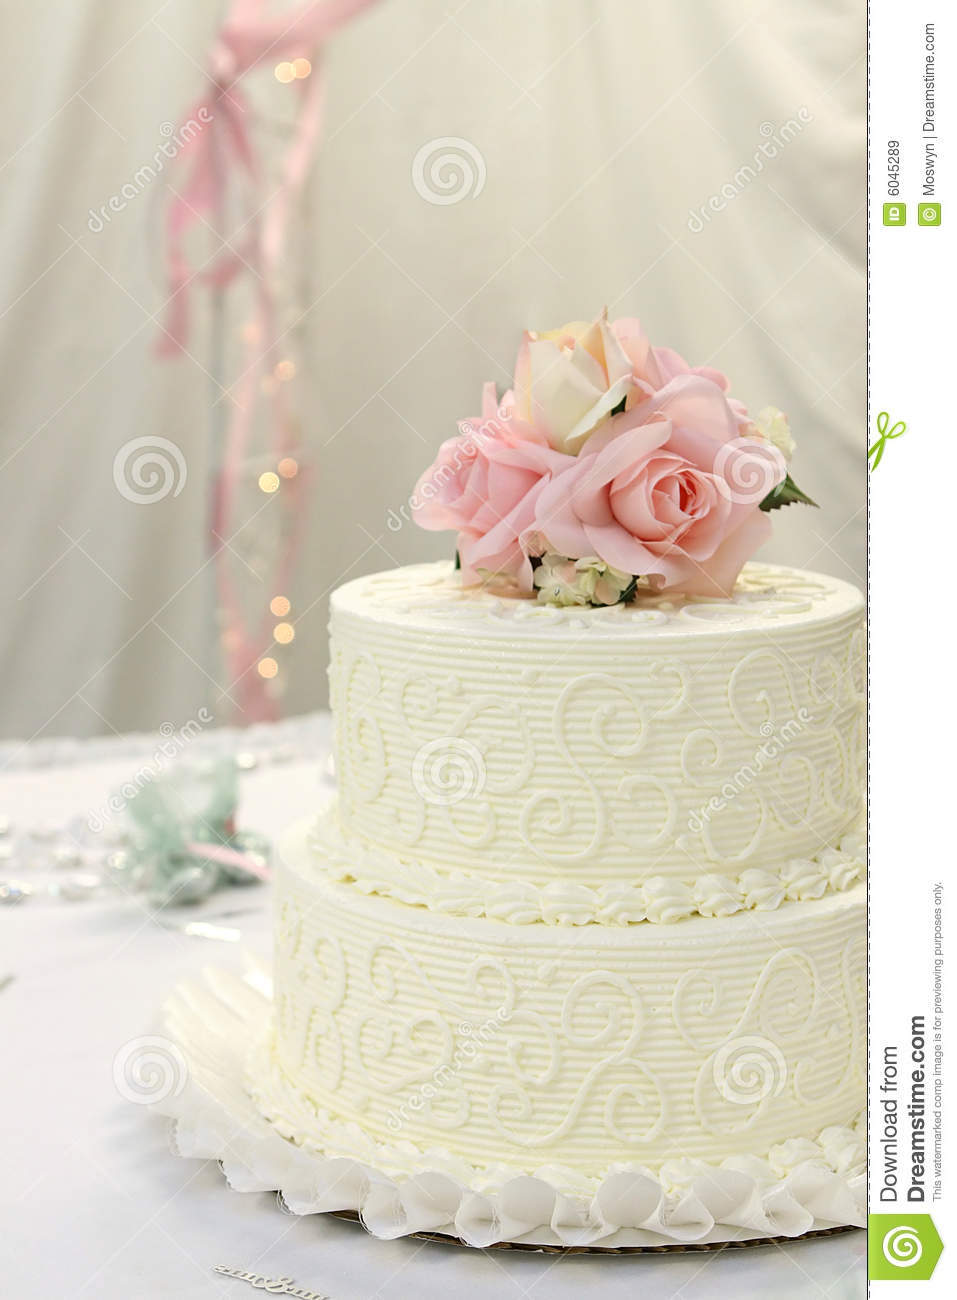 pink rose wedding cake wedding cake with roses royalty free stock images image 18587